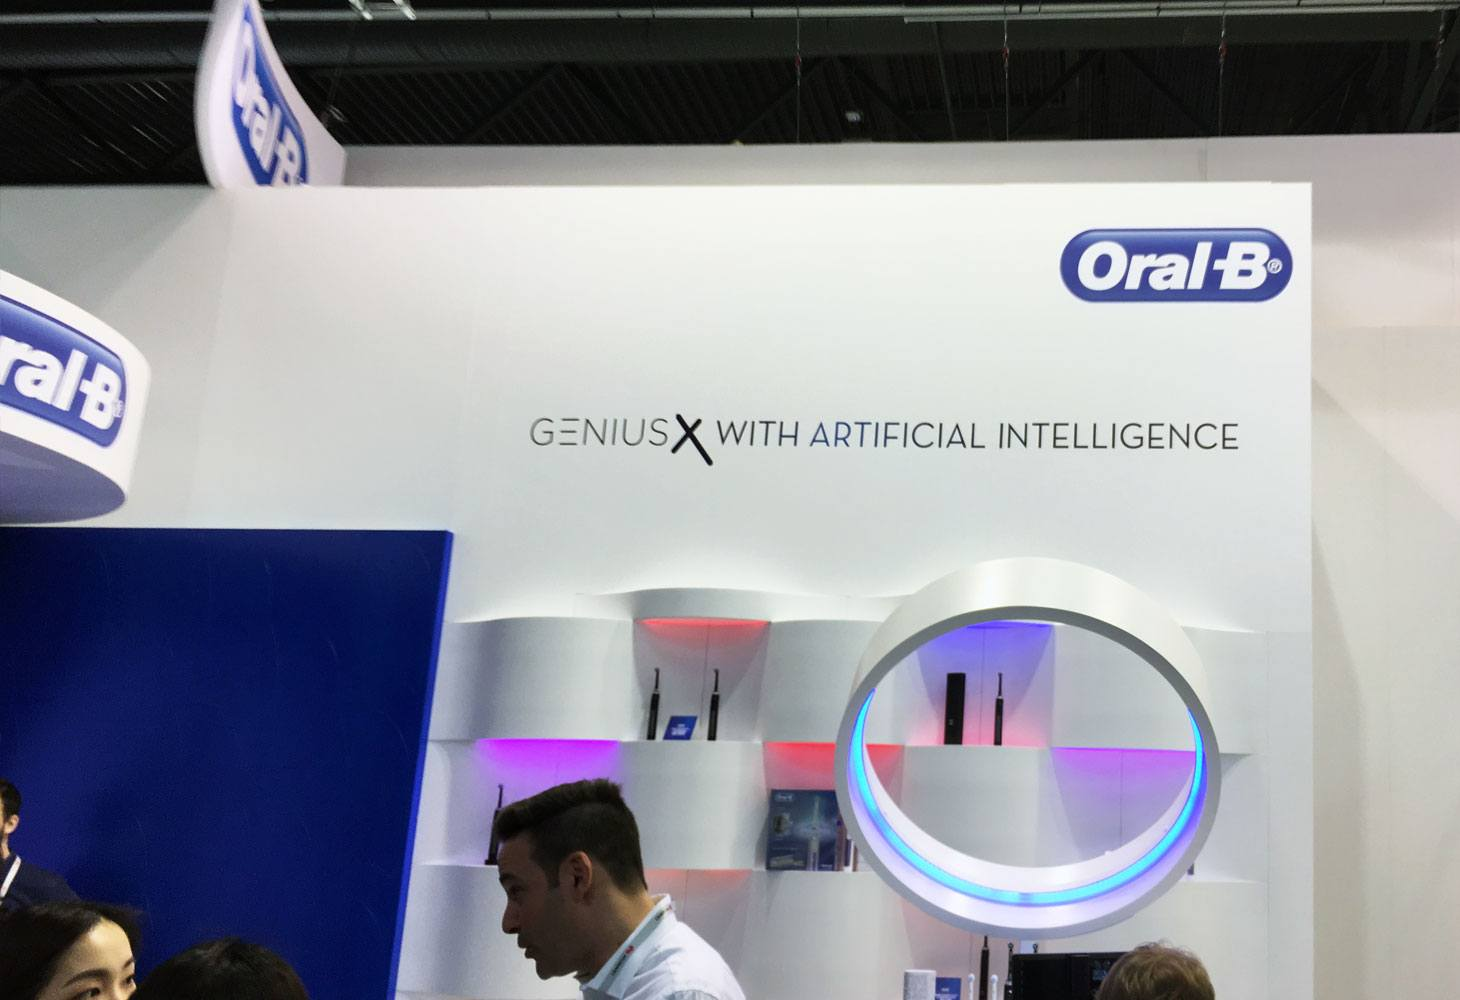 Oral-B display at Mobile World Congress 2019 featuring the Genius X with Artificial Intelligence toothbrush